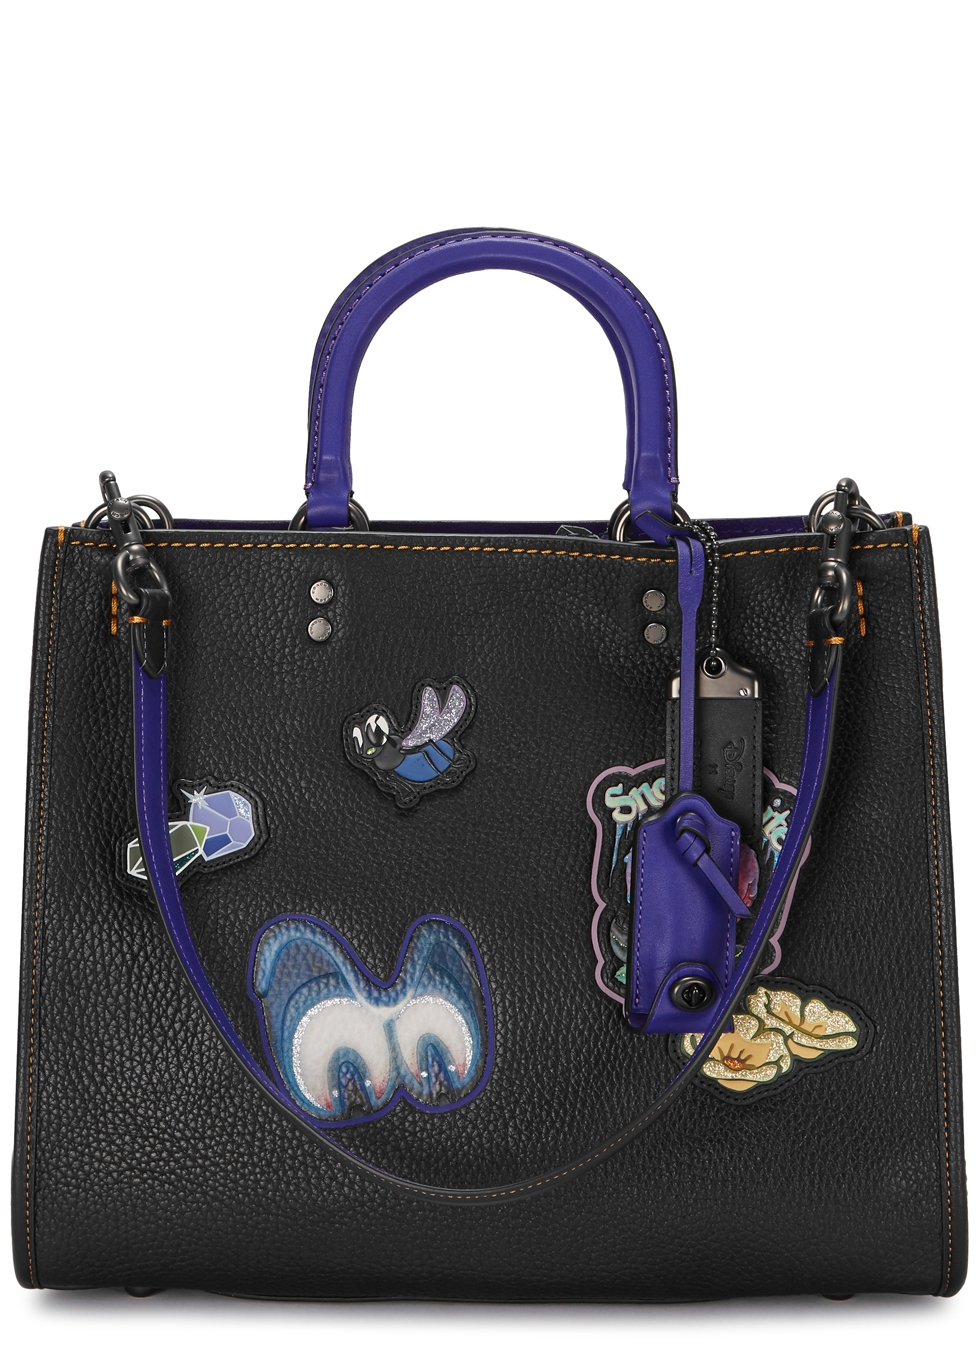 X DISNEY ROGUE BLACK LEATHER TOTE